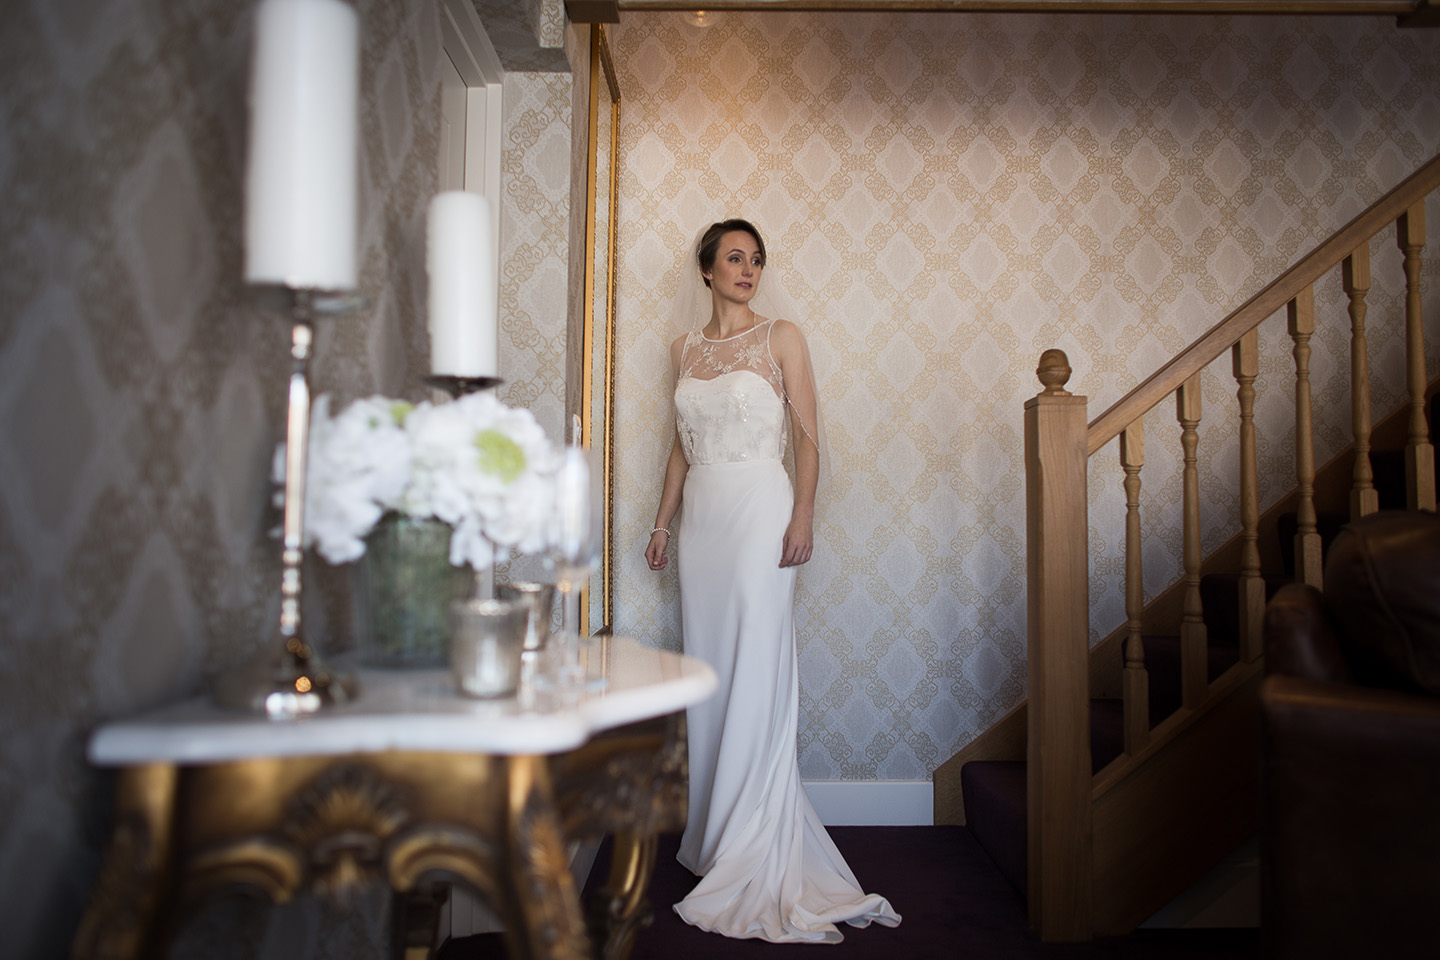 The bride wore a slim fitting fishtail gown for her spring wedding at Bassmead Manor Barns